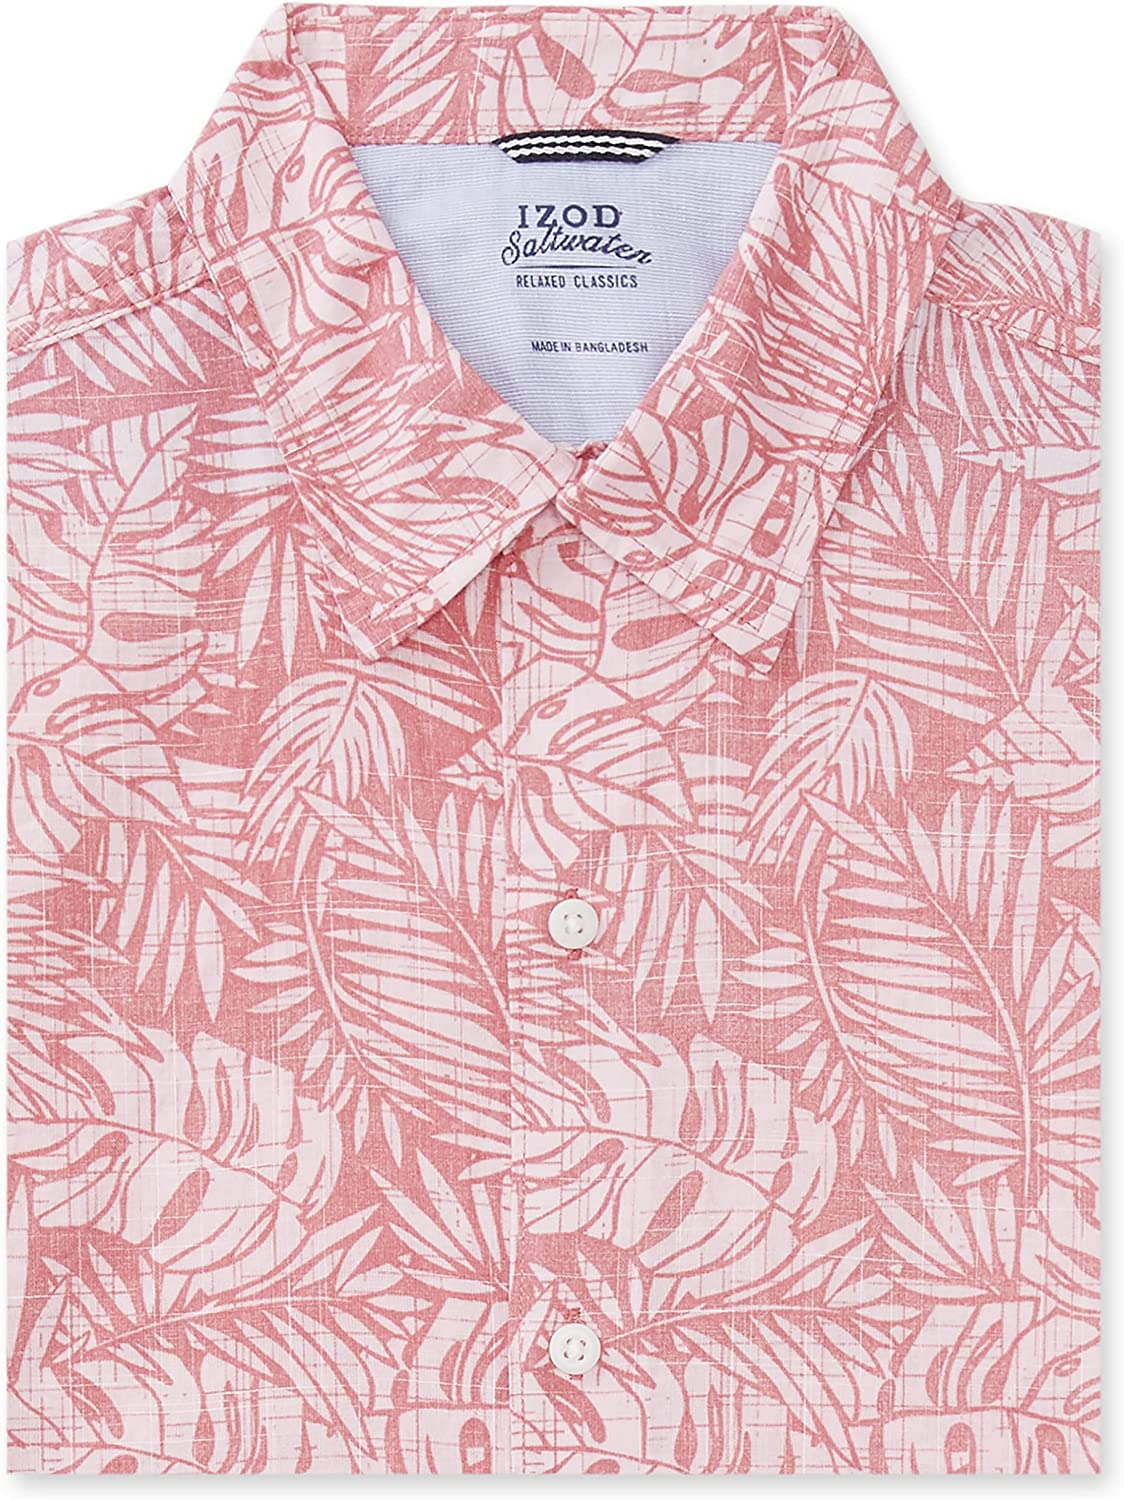 IZOD Men's Big and Tall Saltwater Dockside Chambray Short Sleeve Button Down Pattern Shirt